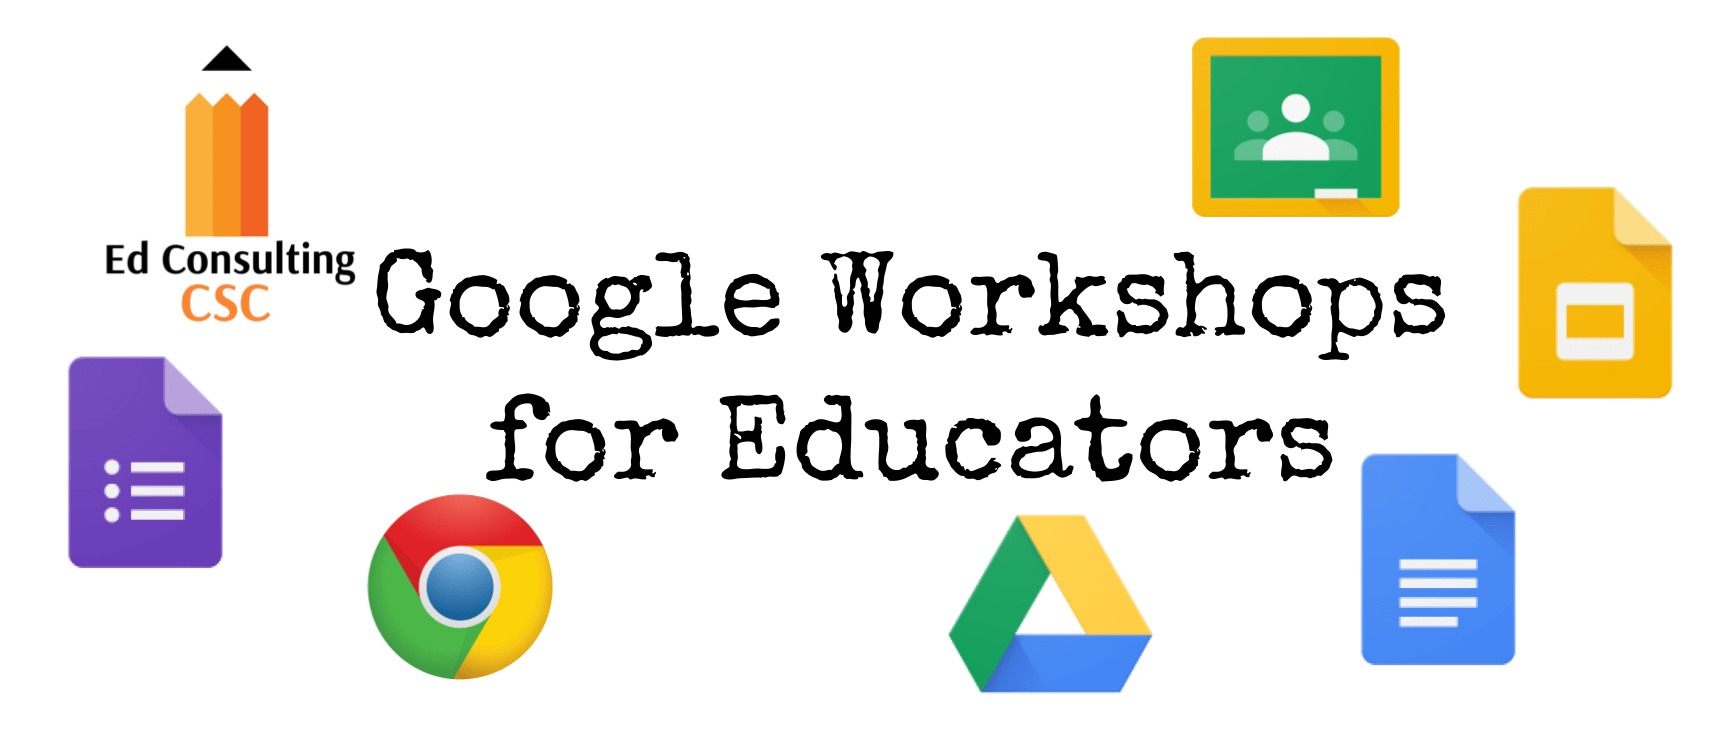 Google Workshops For Educators Ed Consulting Csc